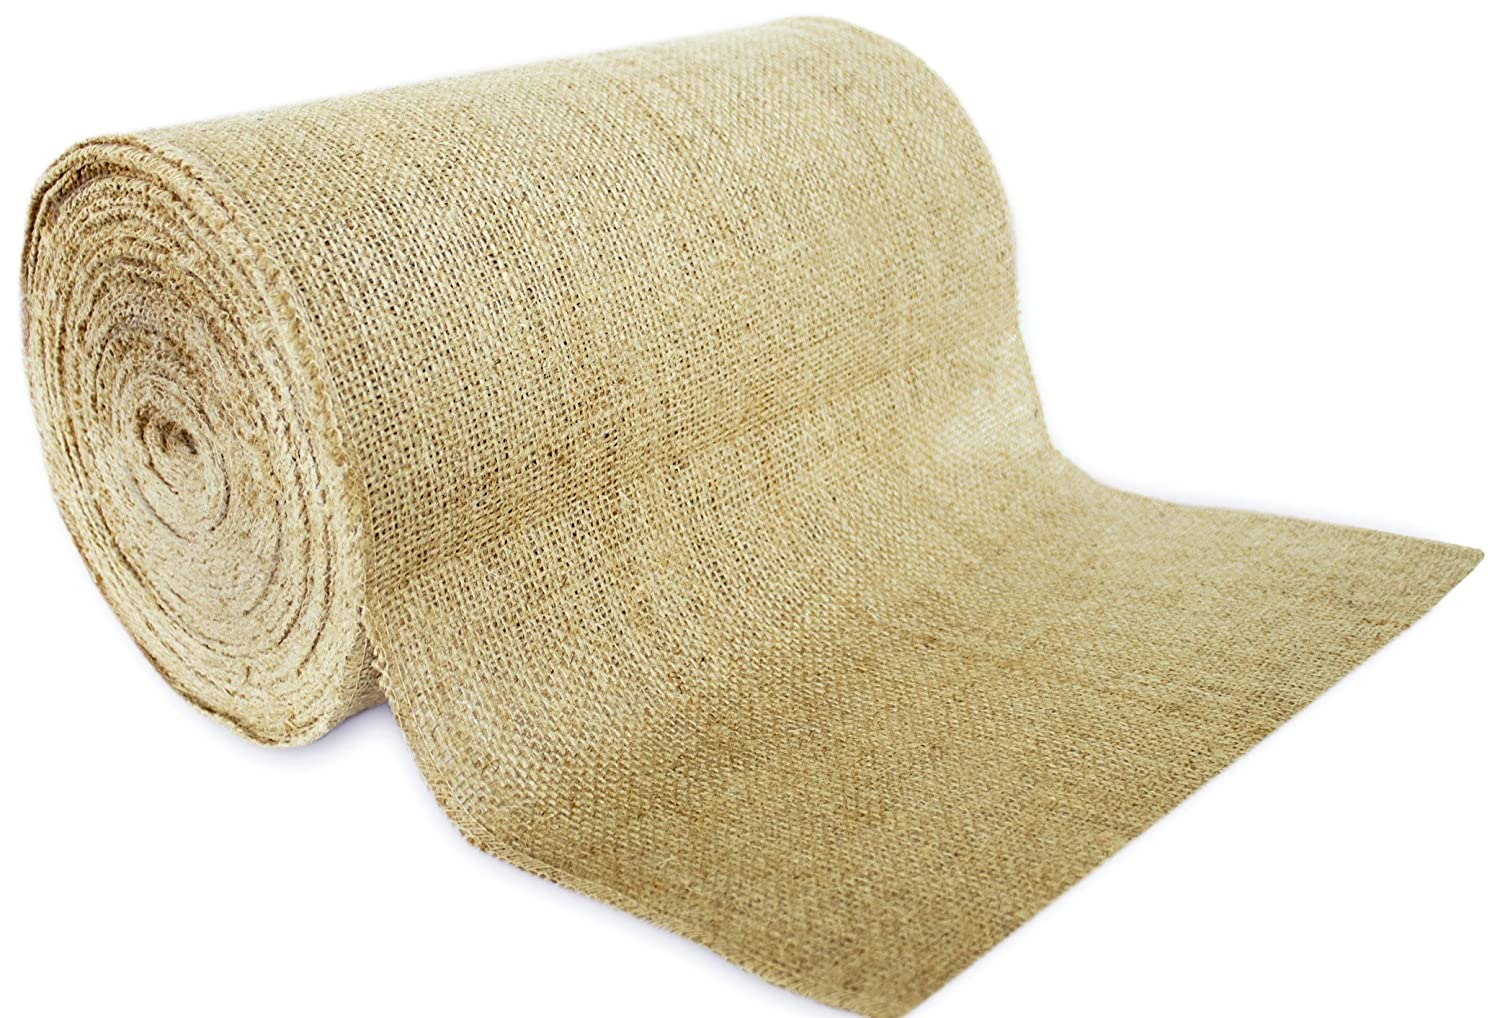 14' No-Fray Burlap Roll Table Runner, 14 inches by 50 Yards, Placemat, Craft Fabric